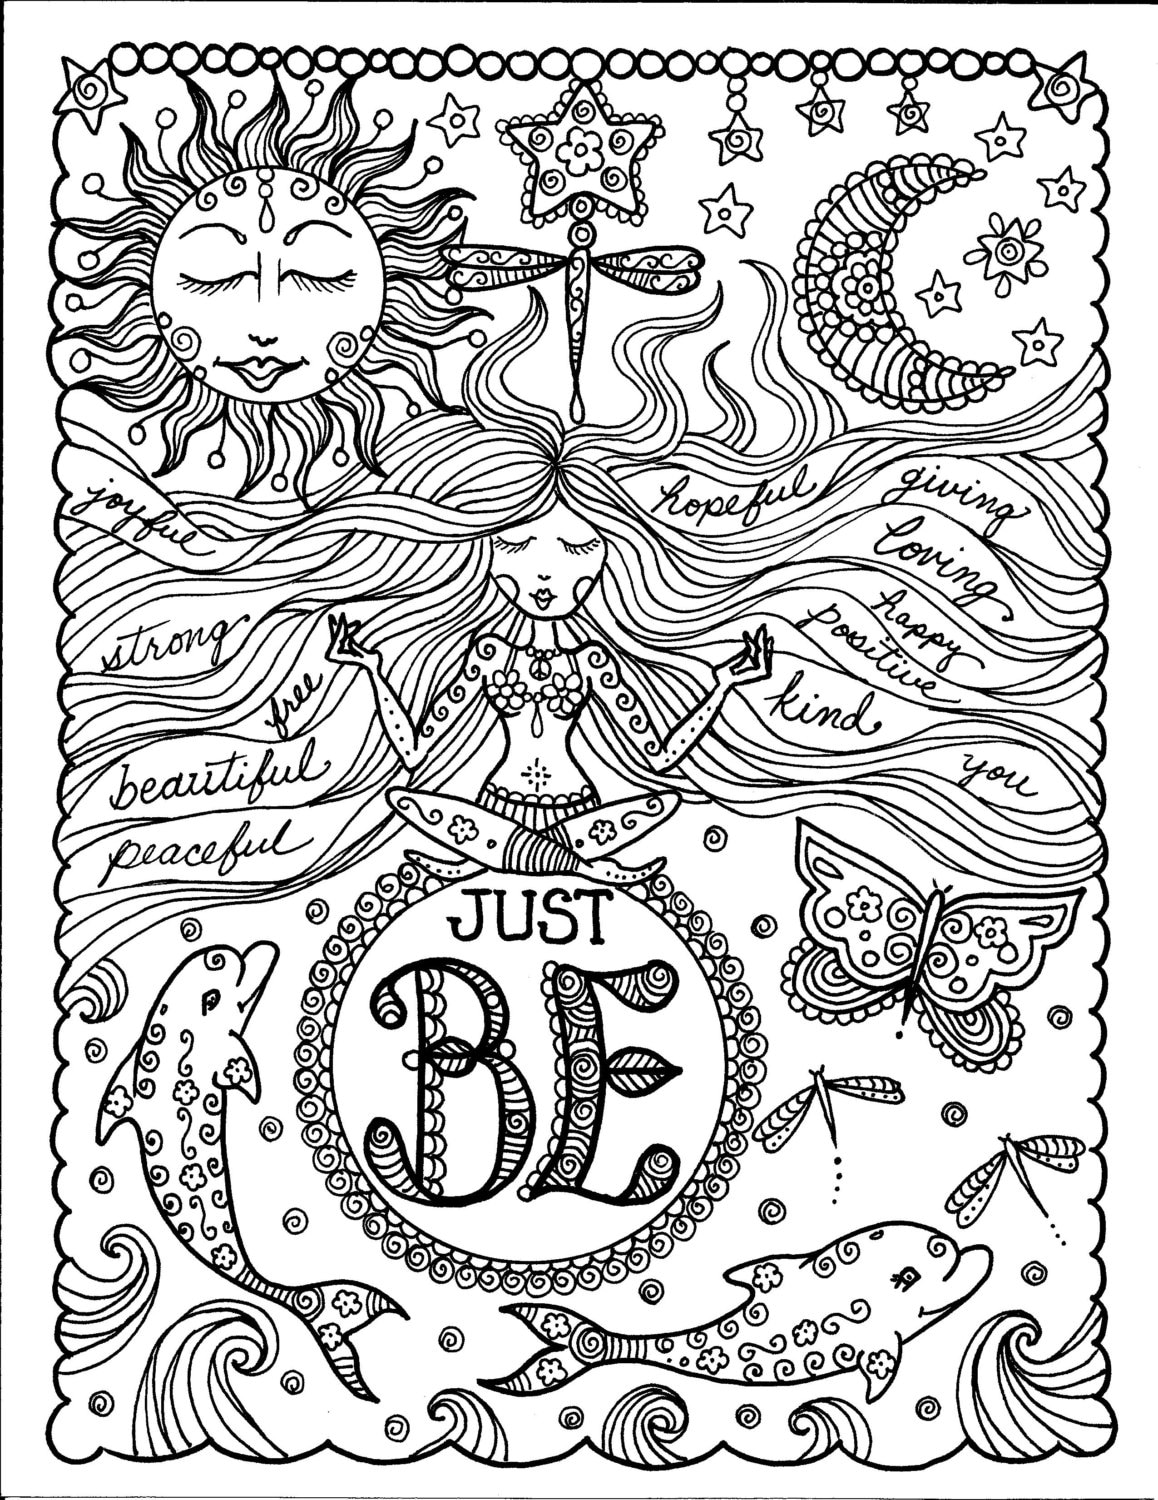 Instant Download Just BE Inspirational Art for you to Color